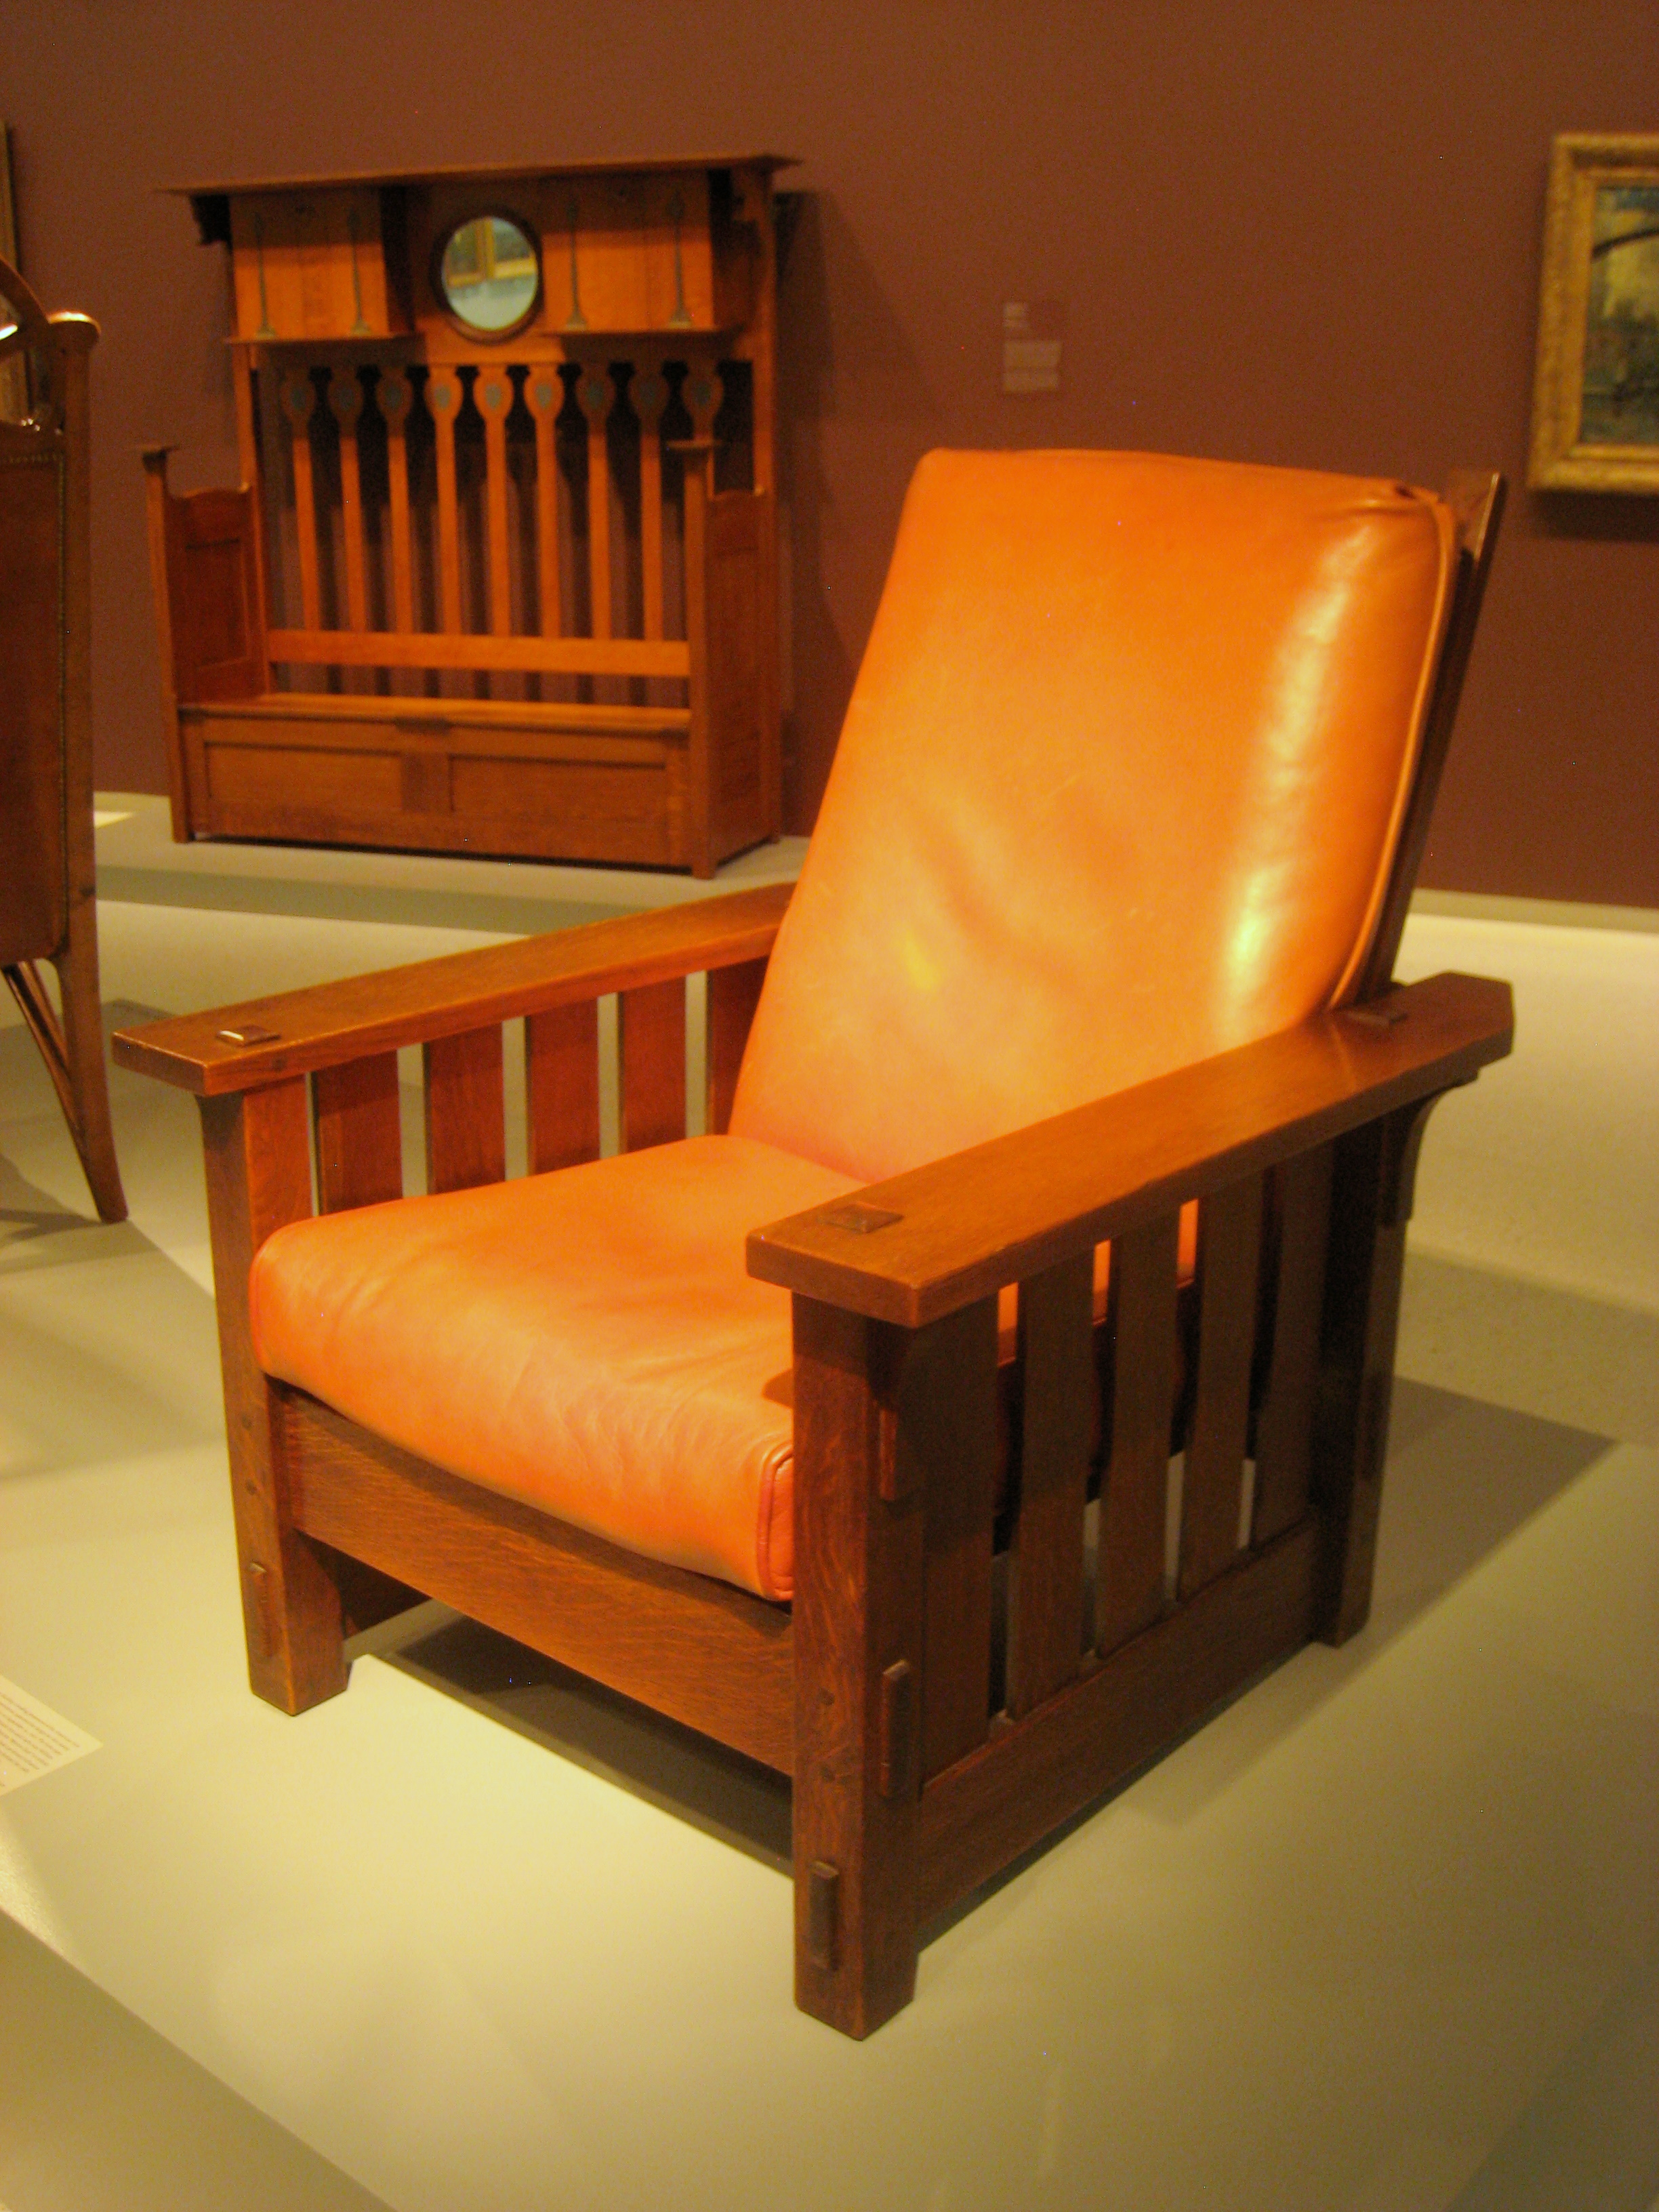 Stickley Chair File Adjustable Back Chair No 2342 Gustav Stickley 1900